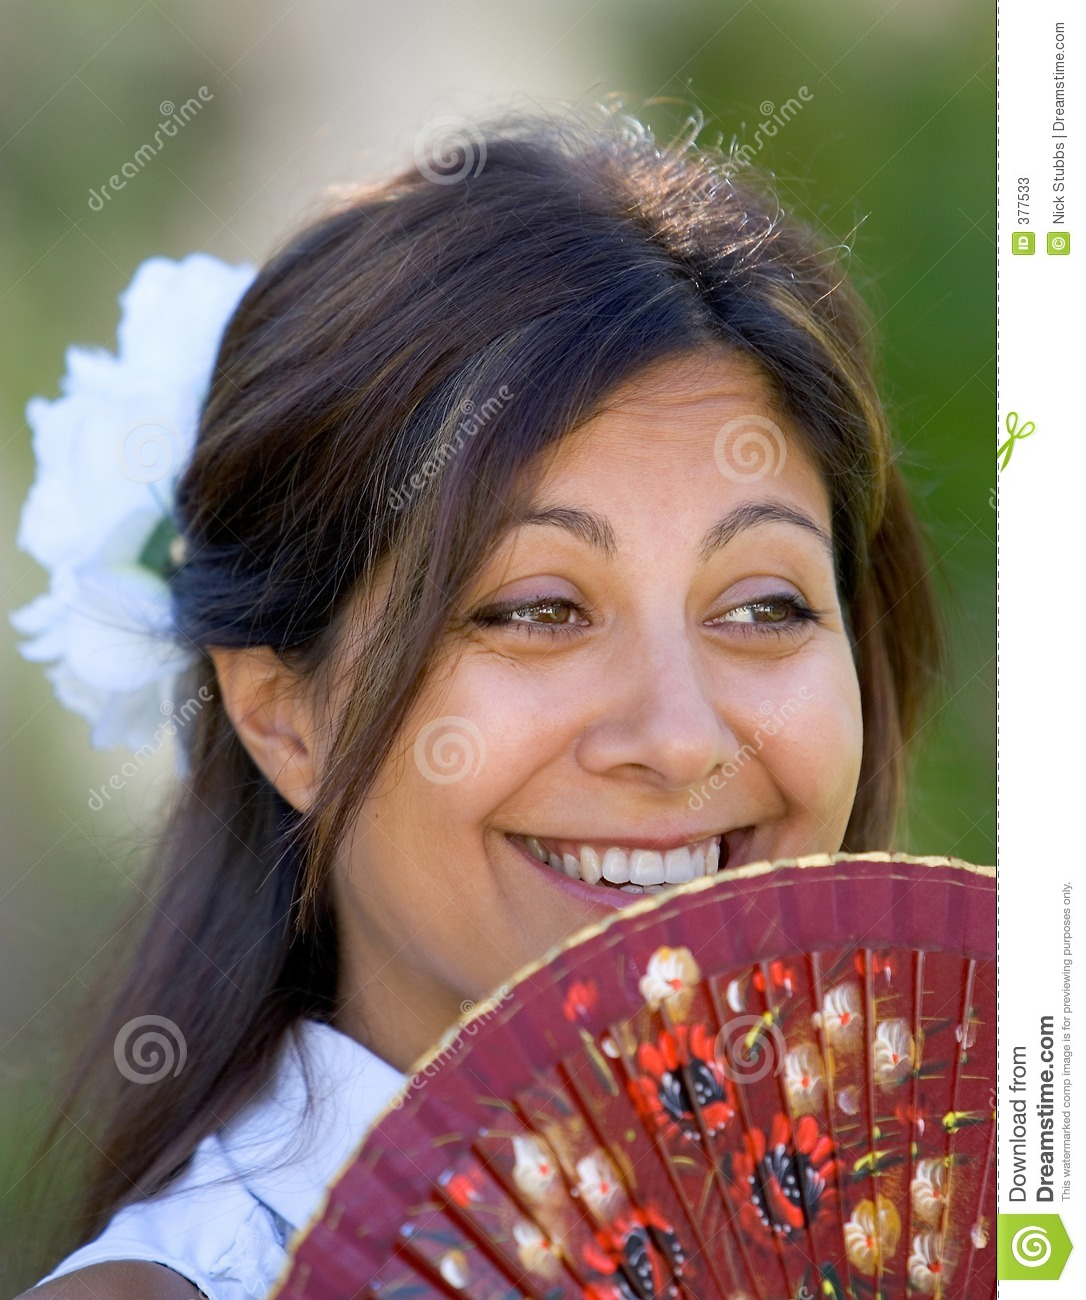 Young Spanish Girl Or Woman Smiling At Camera Holding